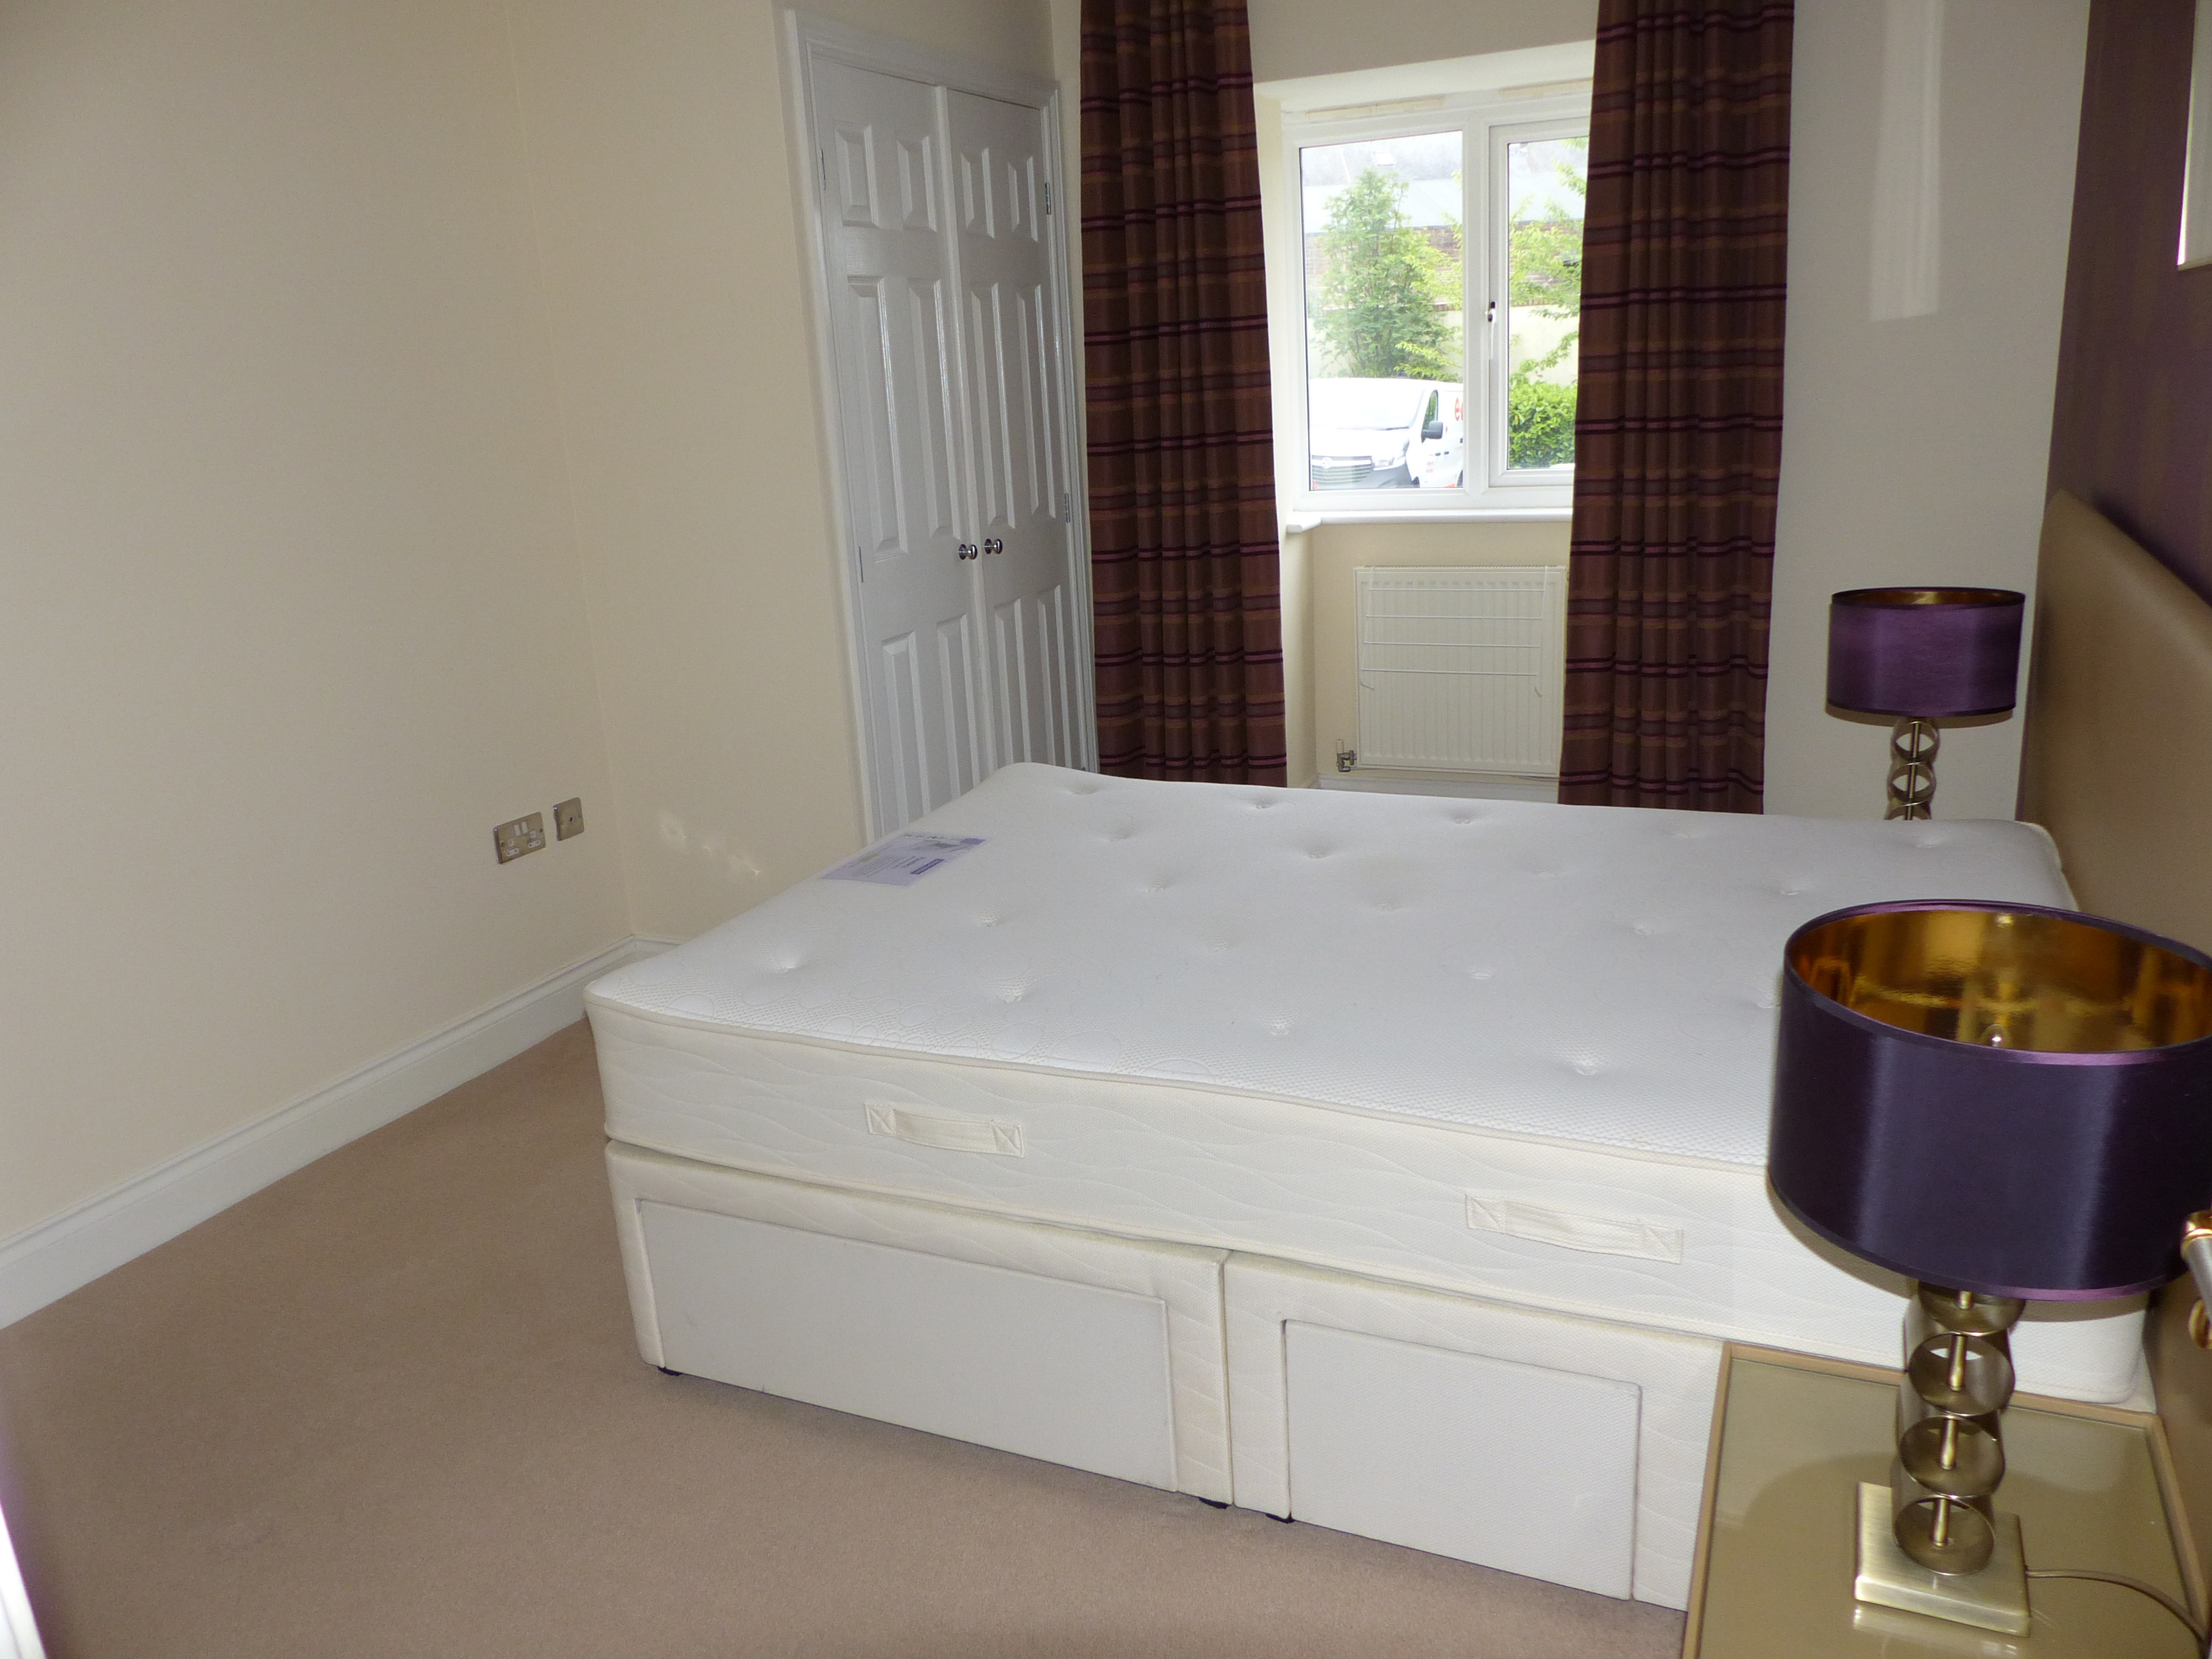 Bedroom Furniture For Sale Sunderland